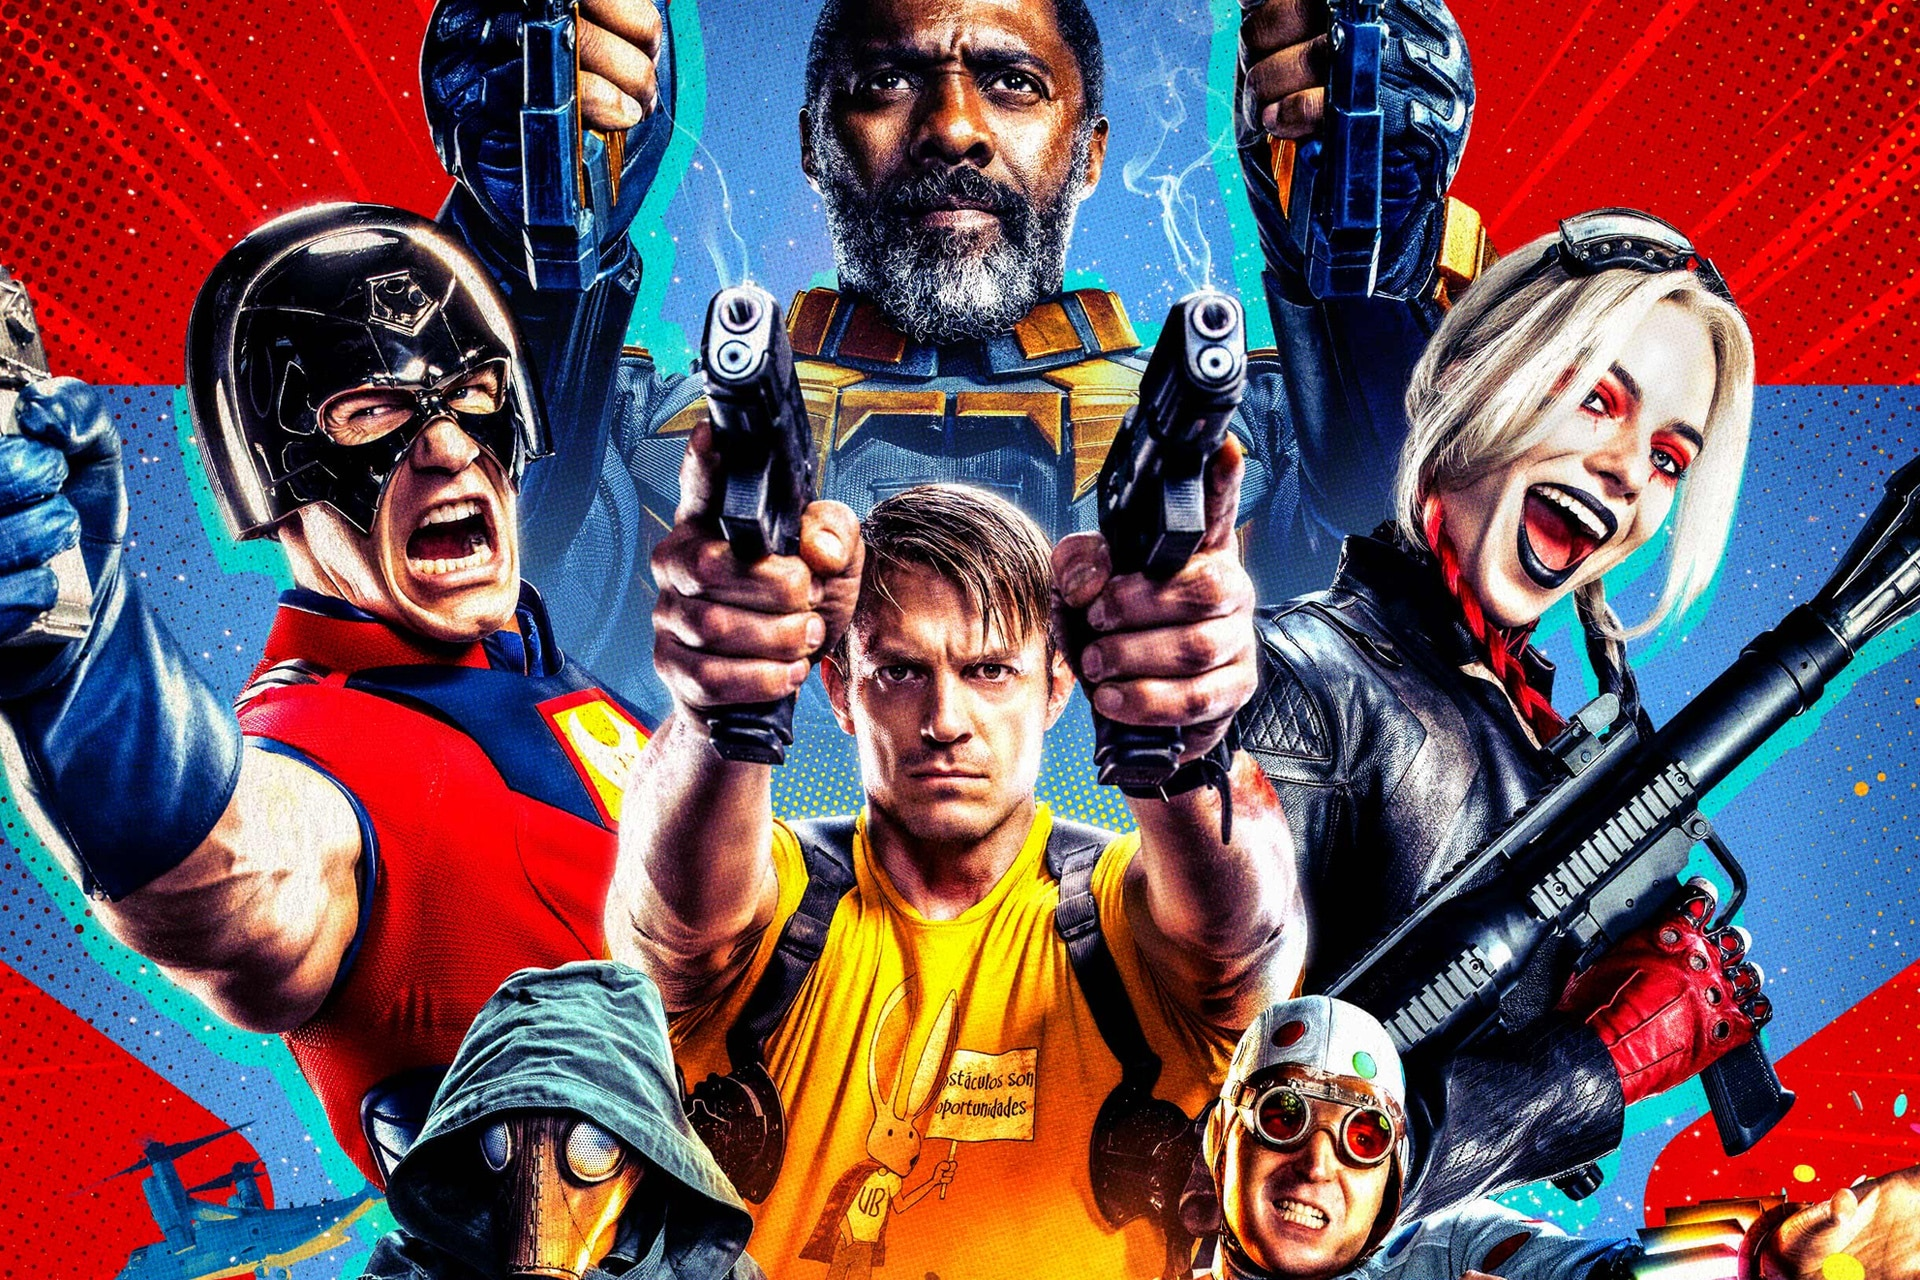 See all 7 confirmed DC films and series for 2021 and 2022